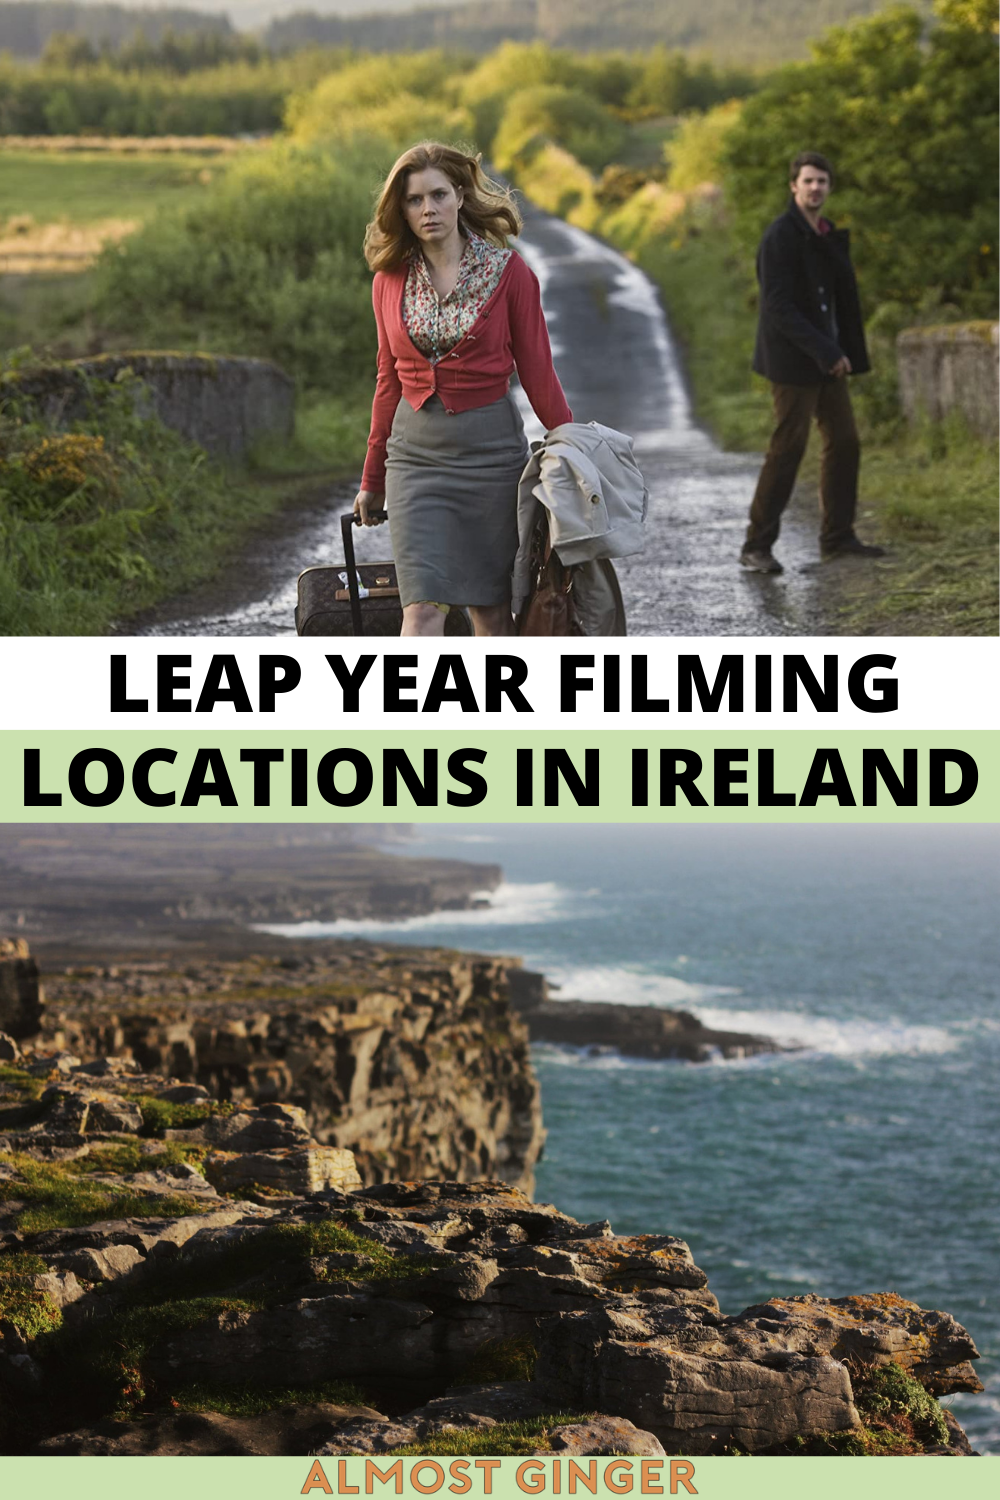 Leap Year Filming Locations in Ireland | almostginger.com